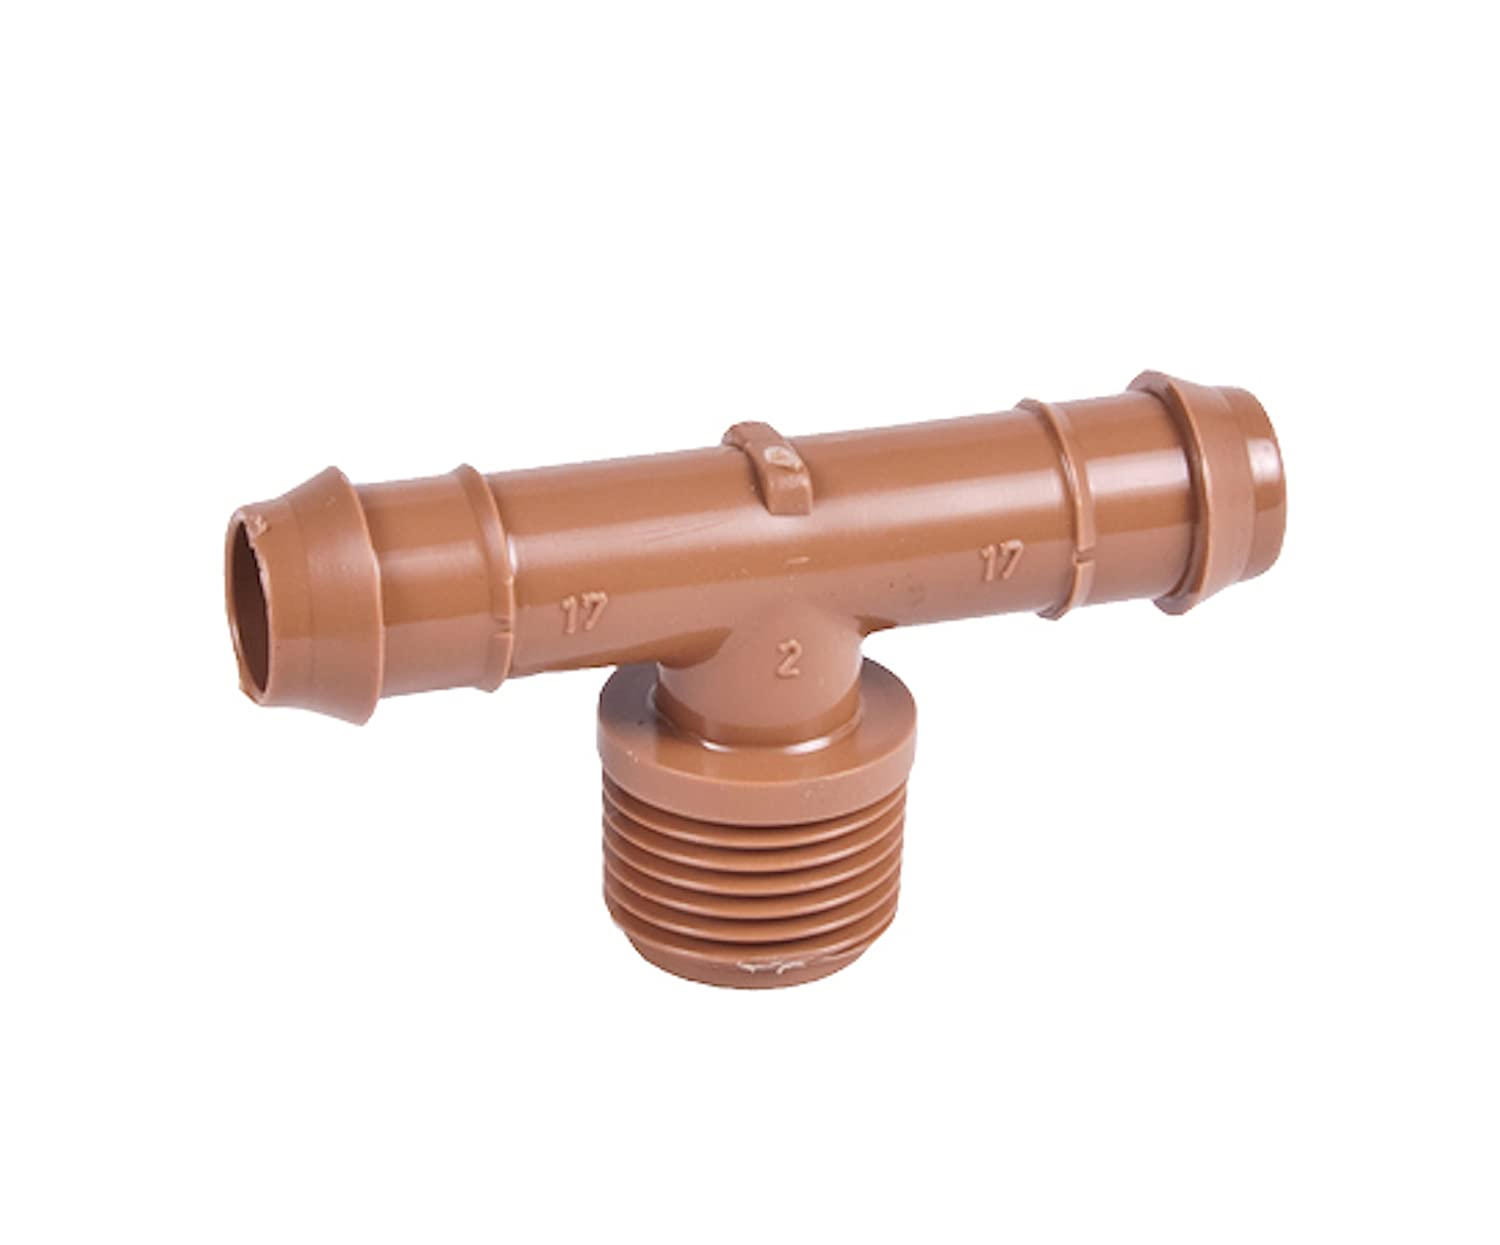 1//2 Tee x 17mm .600 ID Insert Connector 25-Pack 1//2 Drip Tubing Barb Adapter TEE Threaded Fitting MNPT DIG